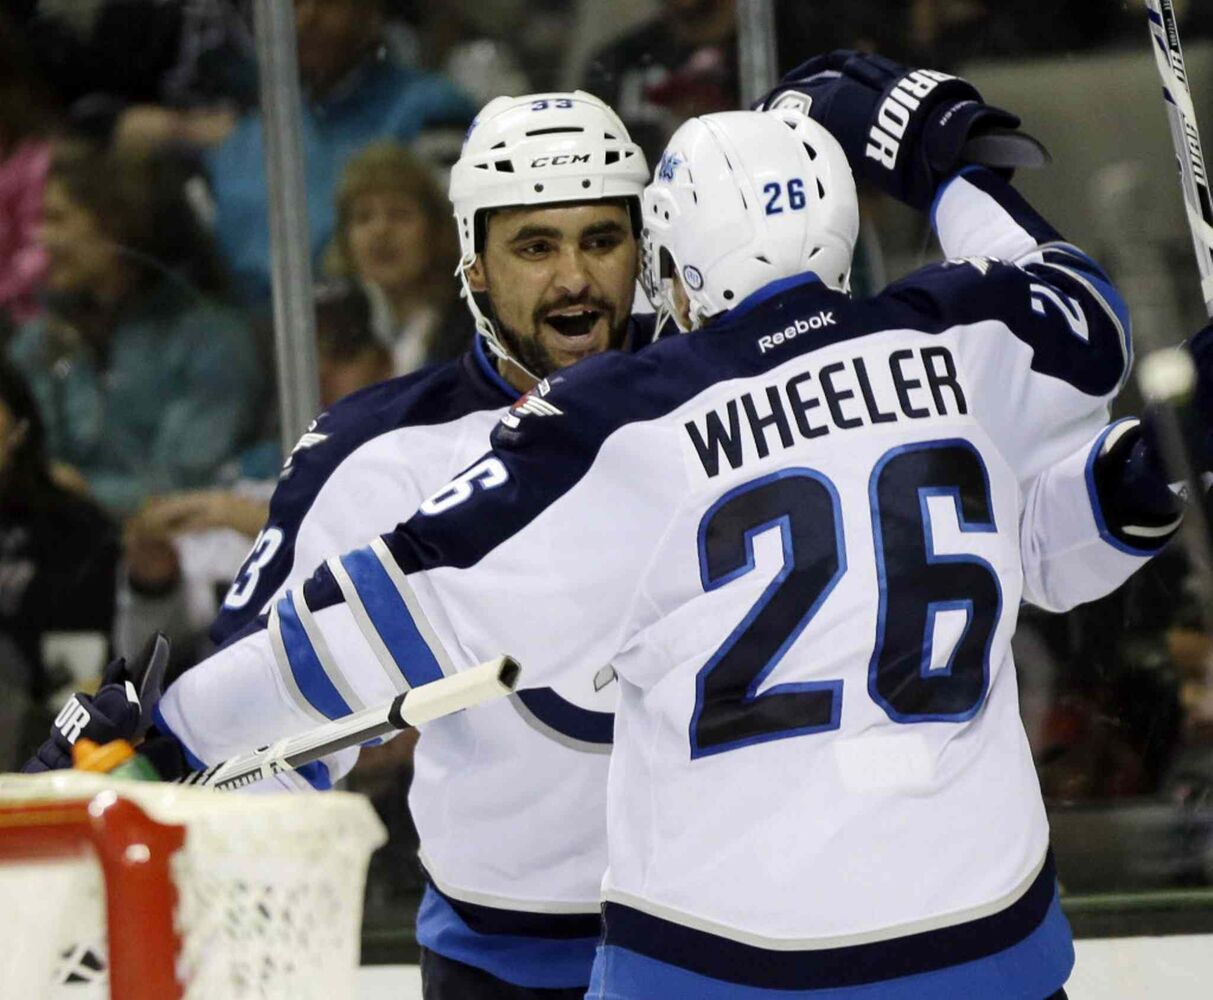 Winnipeg Jets' Dustin Byfuglien, left, celebrates his goal with teammate Blake Wheeler (26) during the second period.  (Marcio Jose Sanchez / The Associated Press)